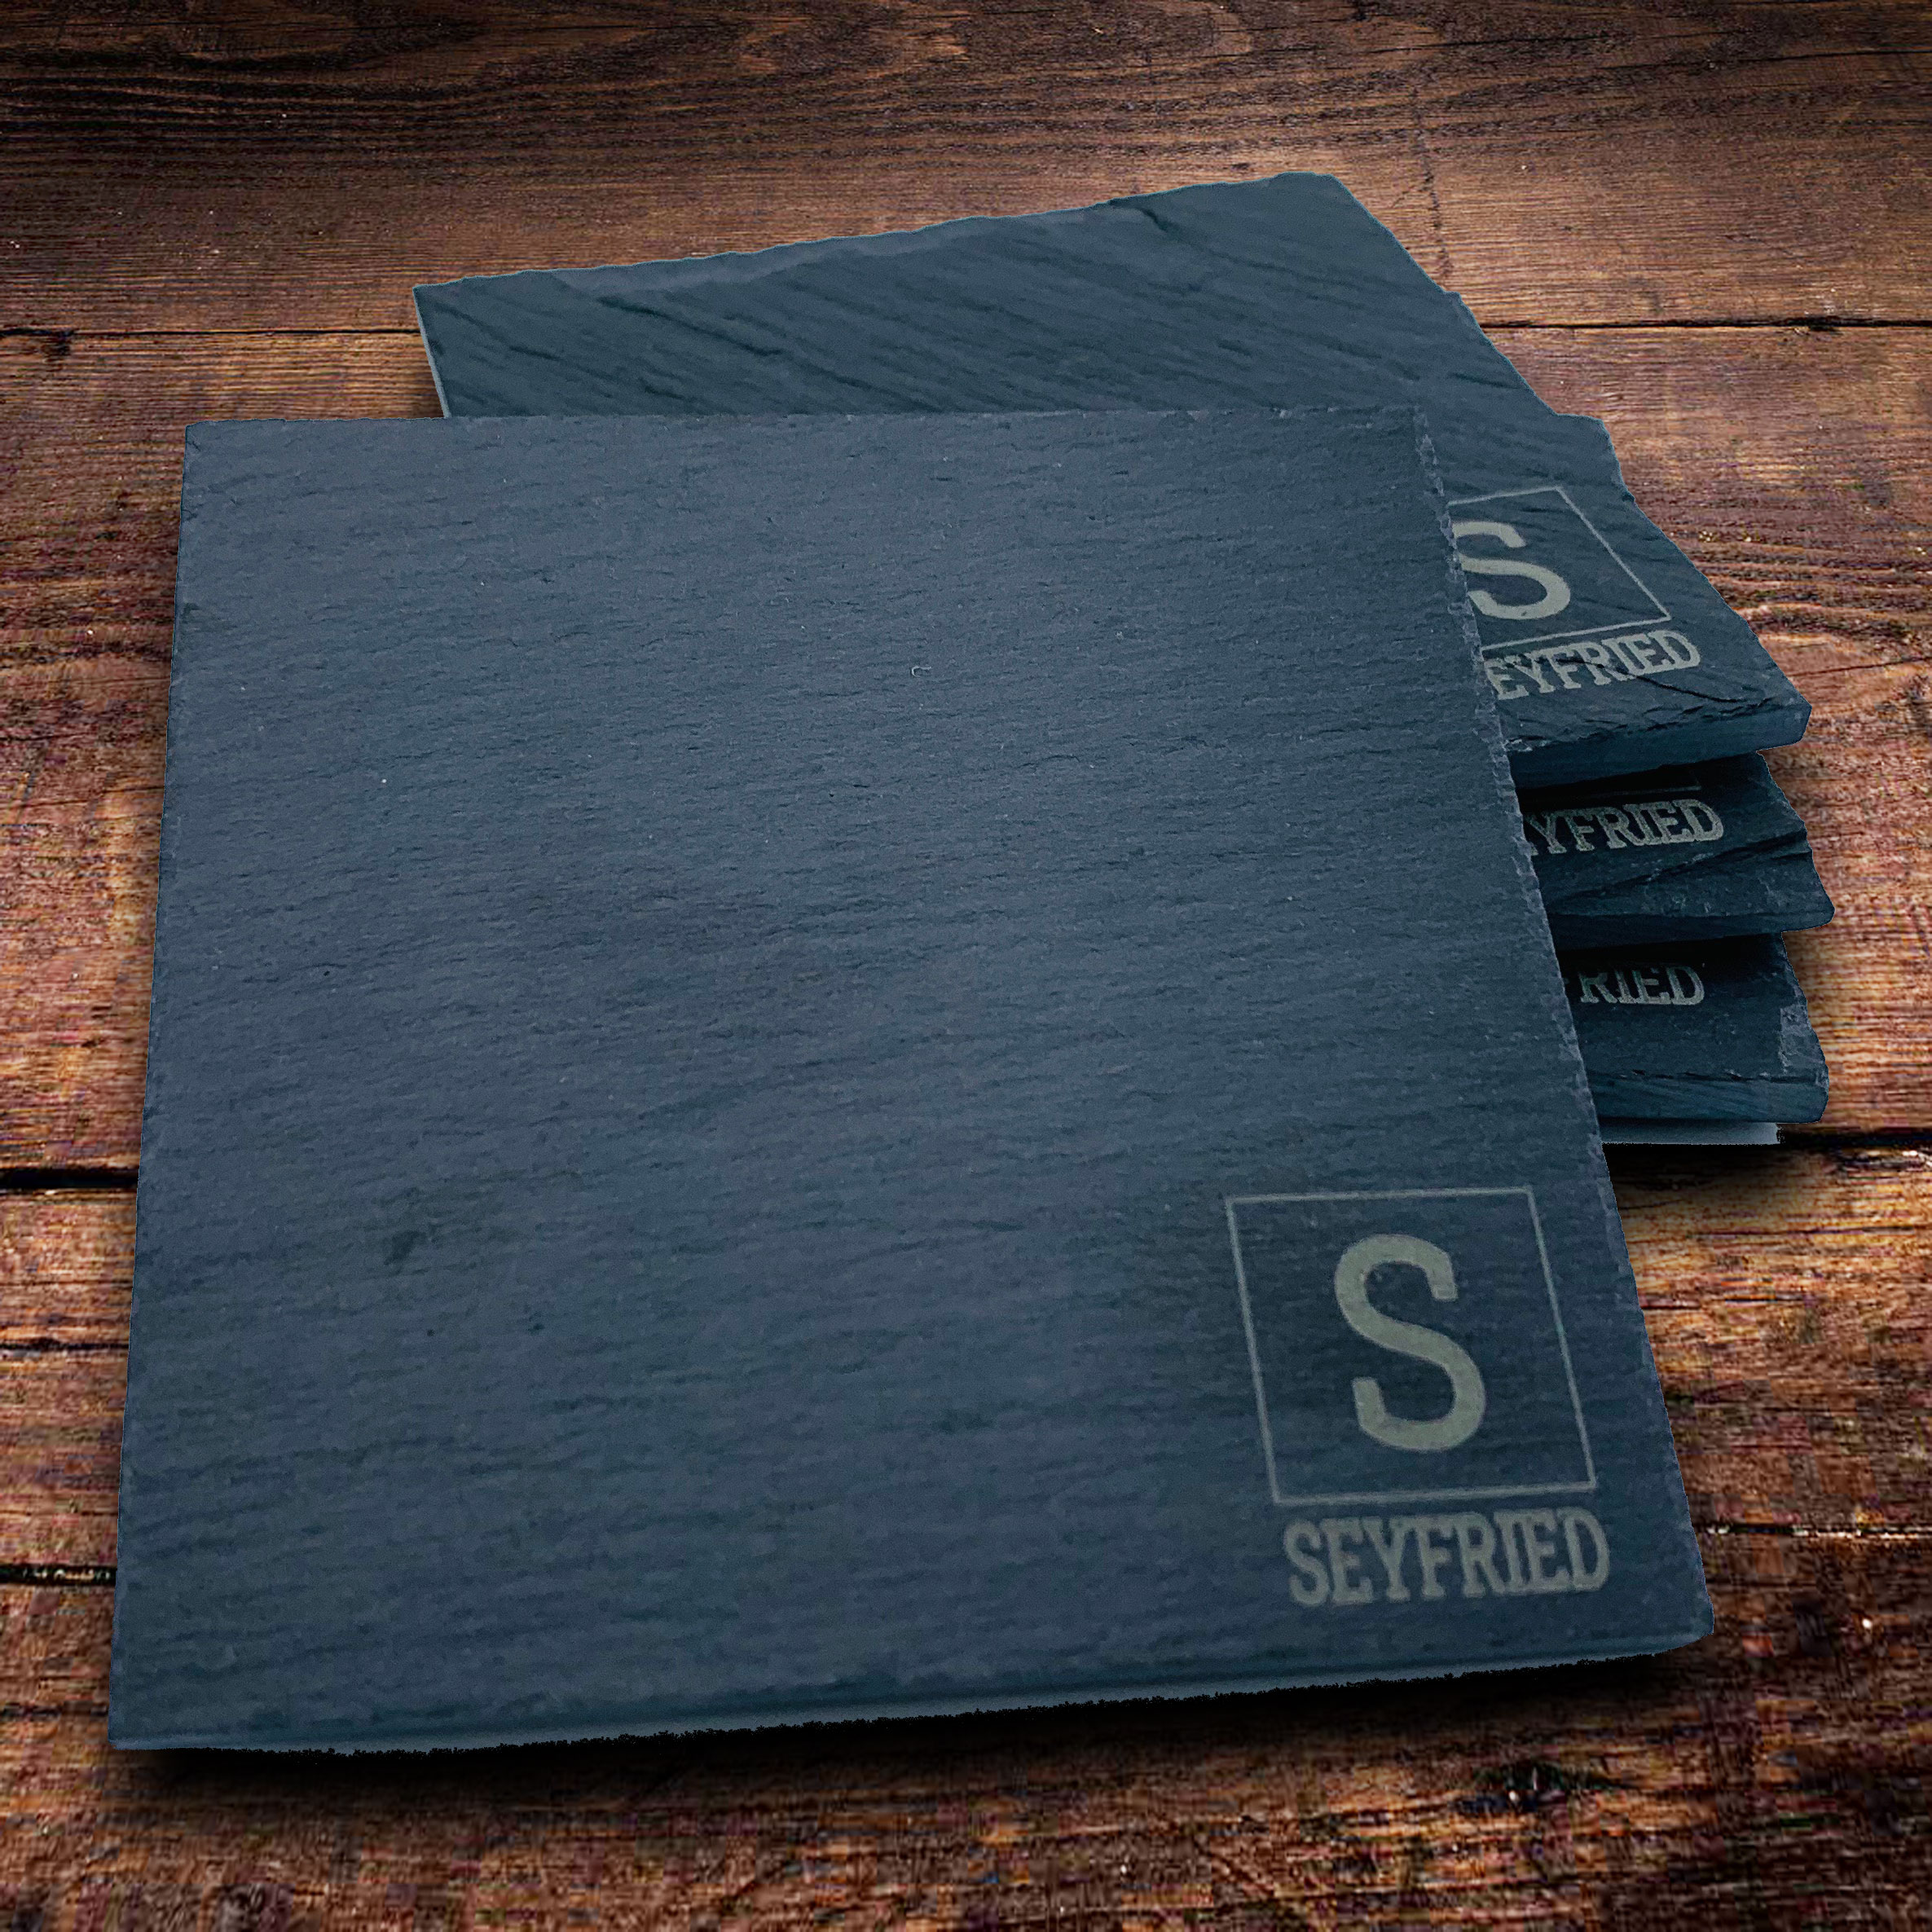 Personalized custom engraved slate coasters make a perfect gift families will remember you by.